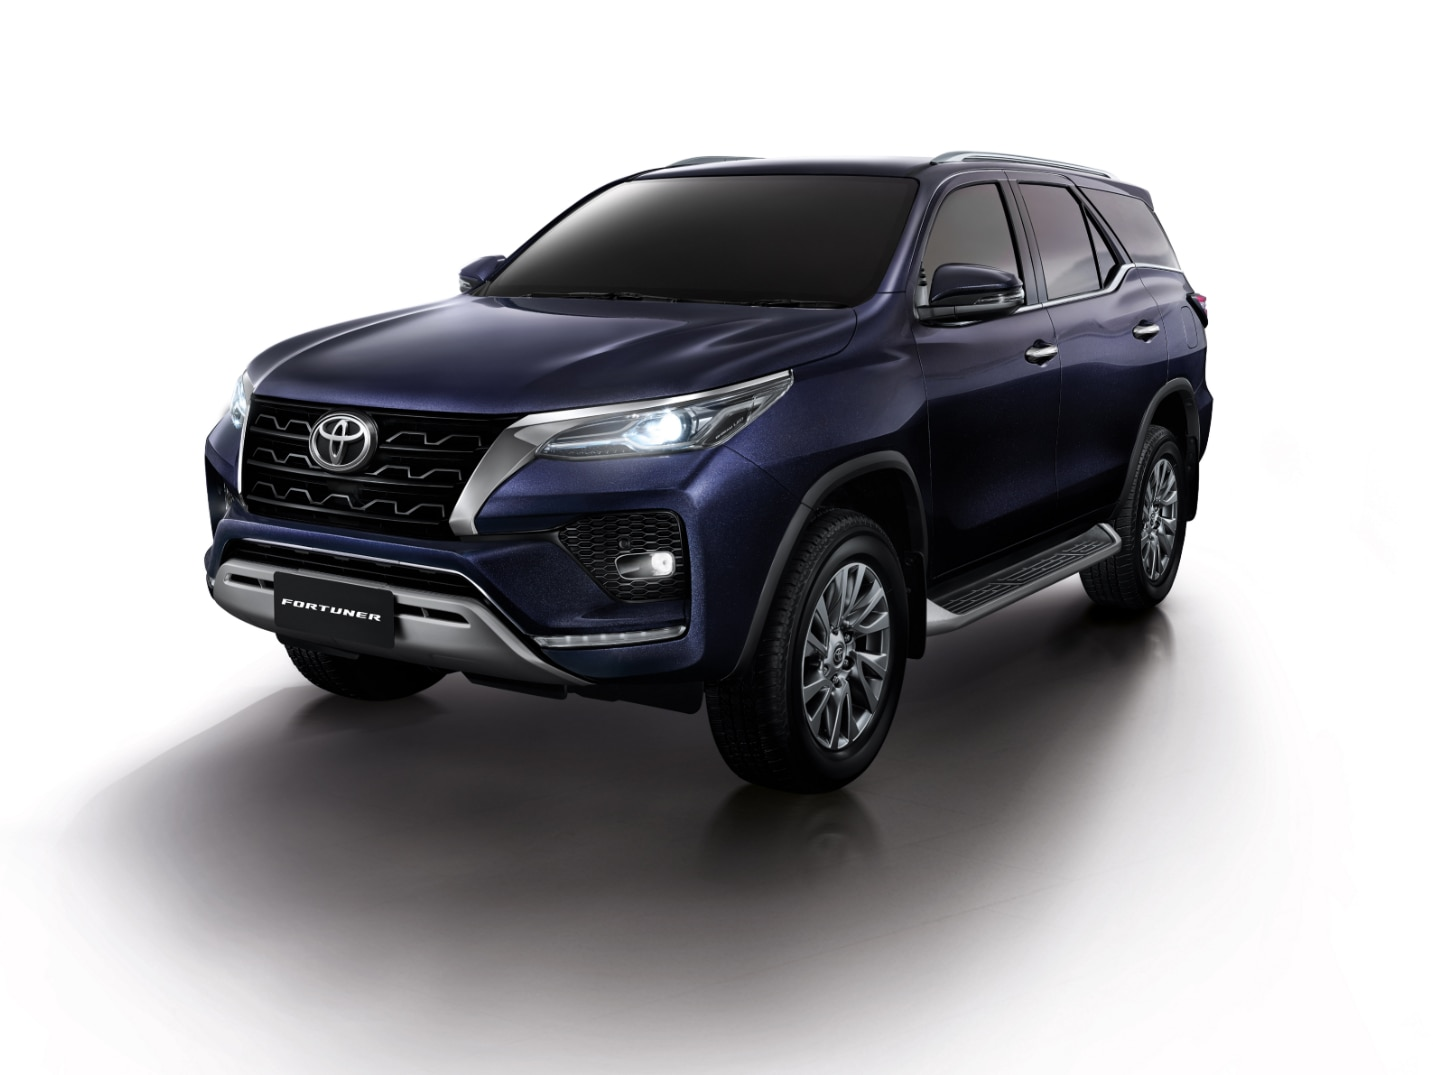 toyota fortuner facelift unveiled in thailand ford